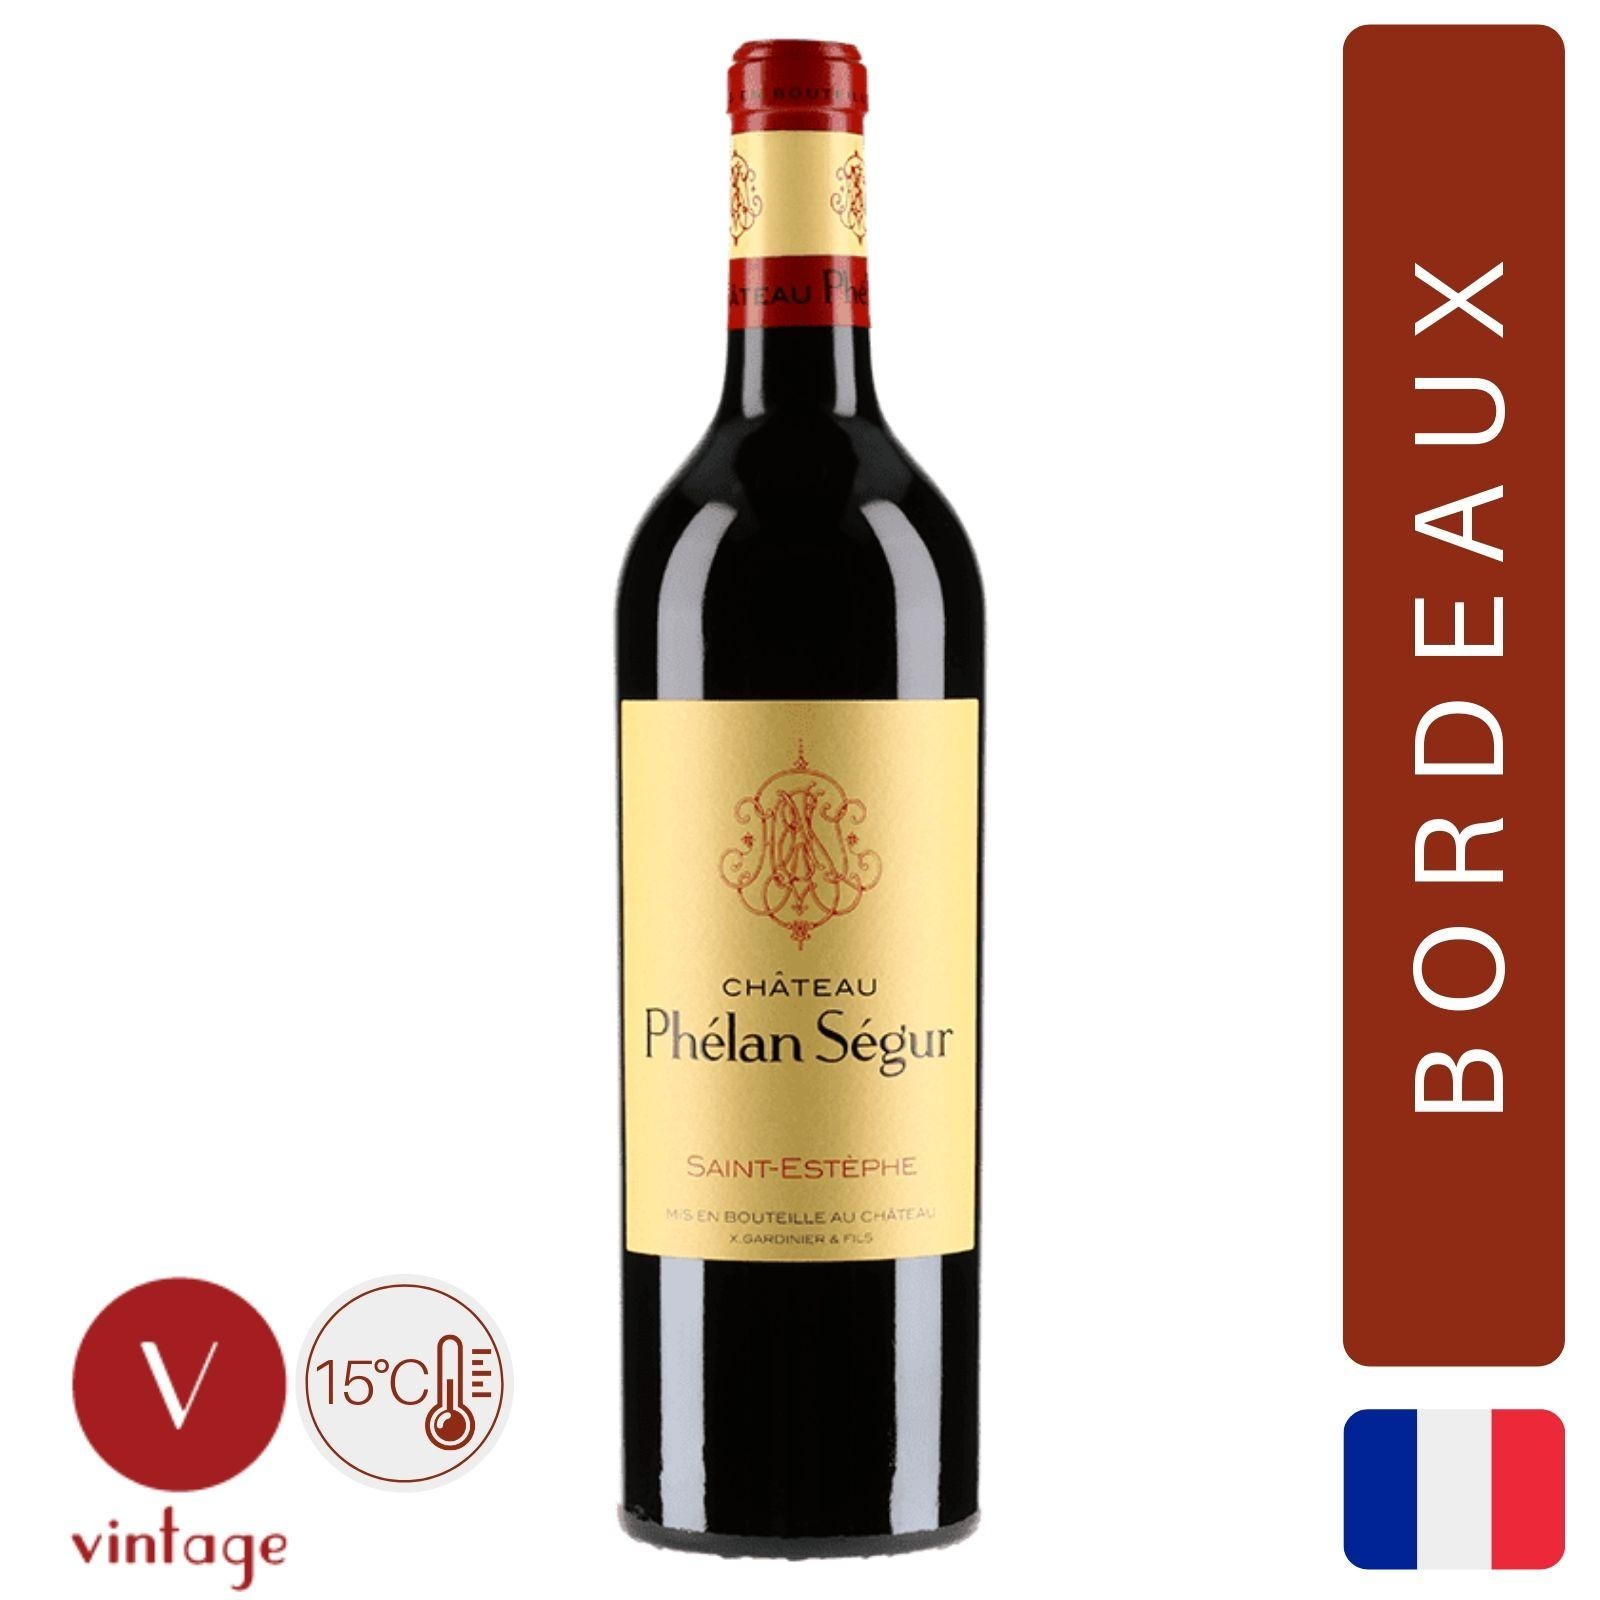 Chateau Phelan Segur - Saint Estephe - Bordeaux Red Wine